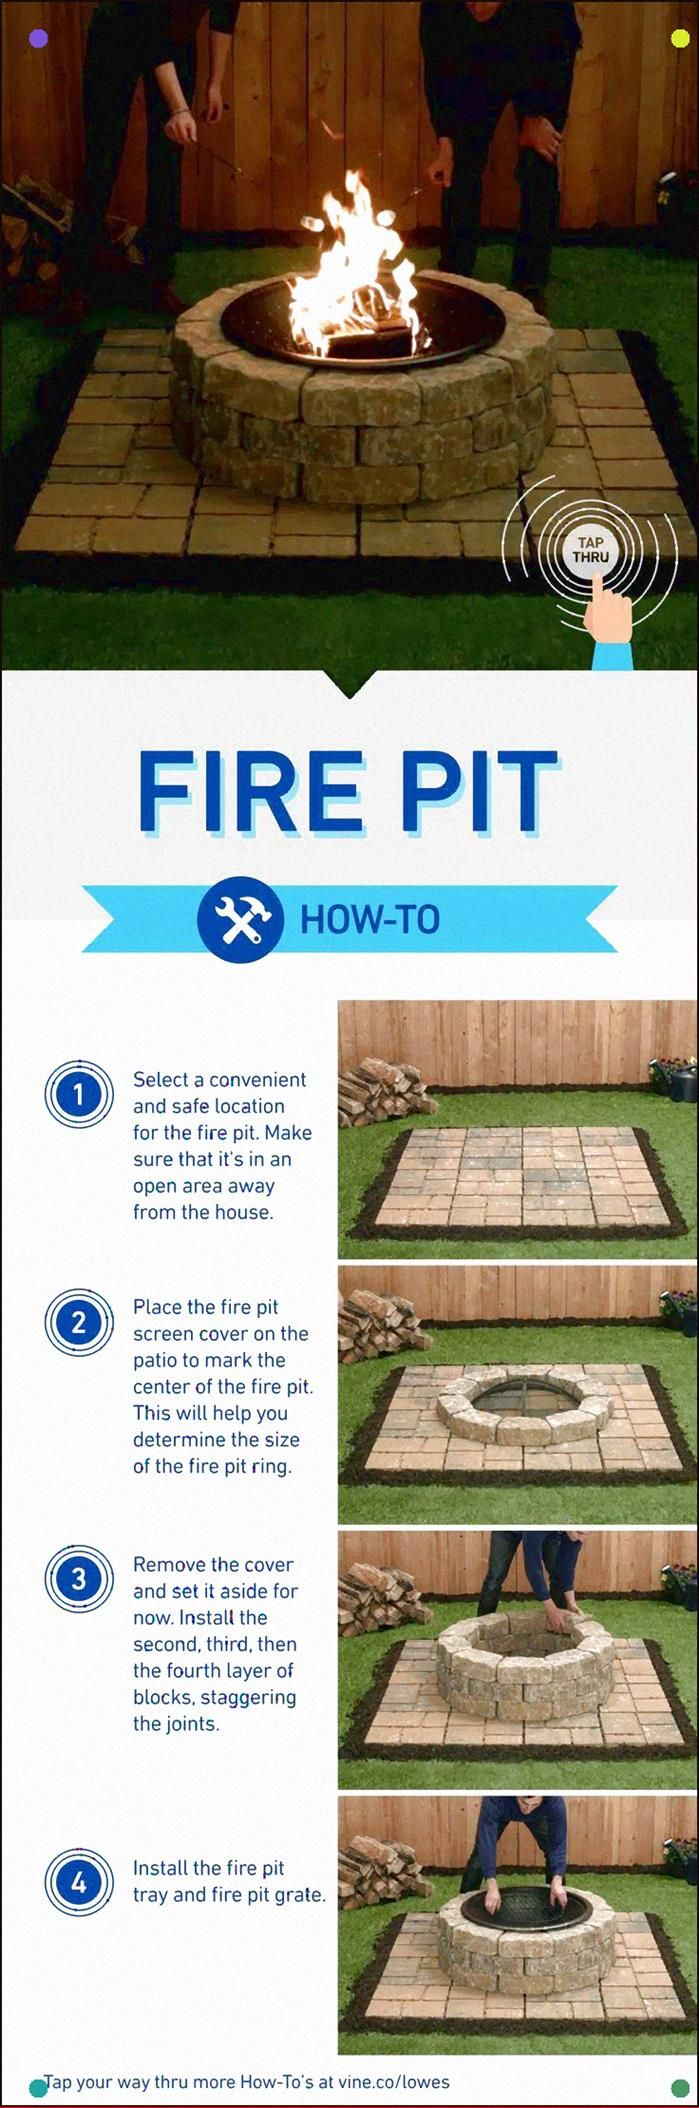 Build This Diy Fire Pit And Then Tap Your Way Thru More How Tos At Www Vine Colowes Small Outdoor Patios Budget Backyard Backyard